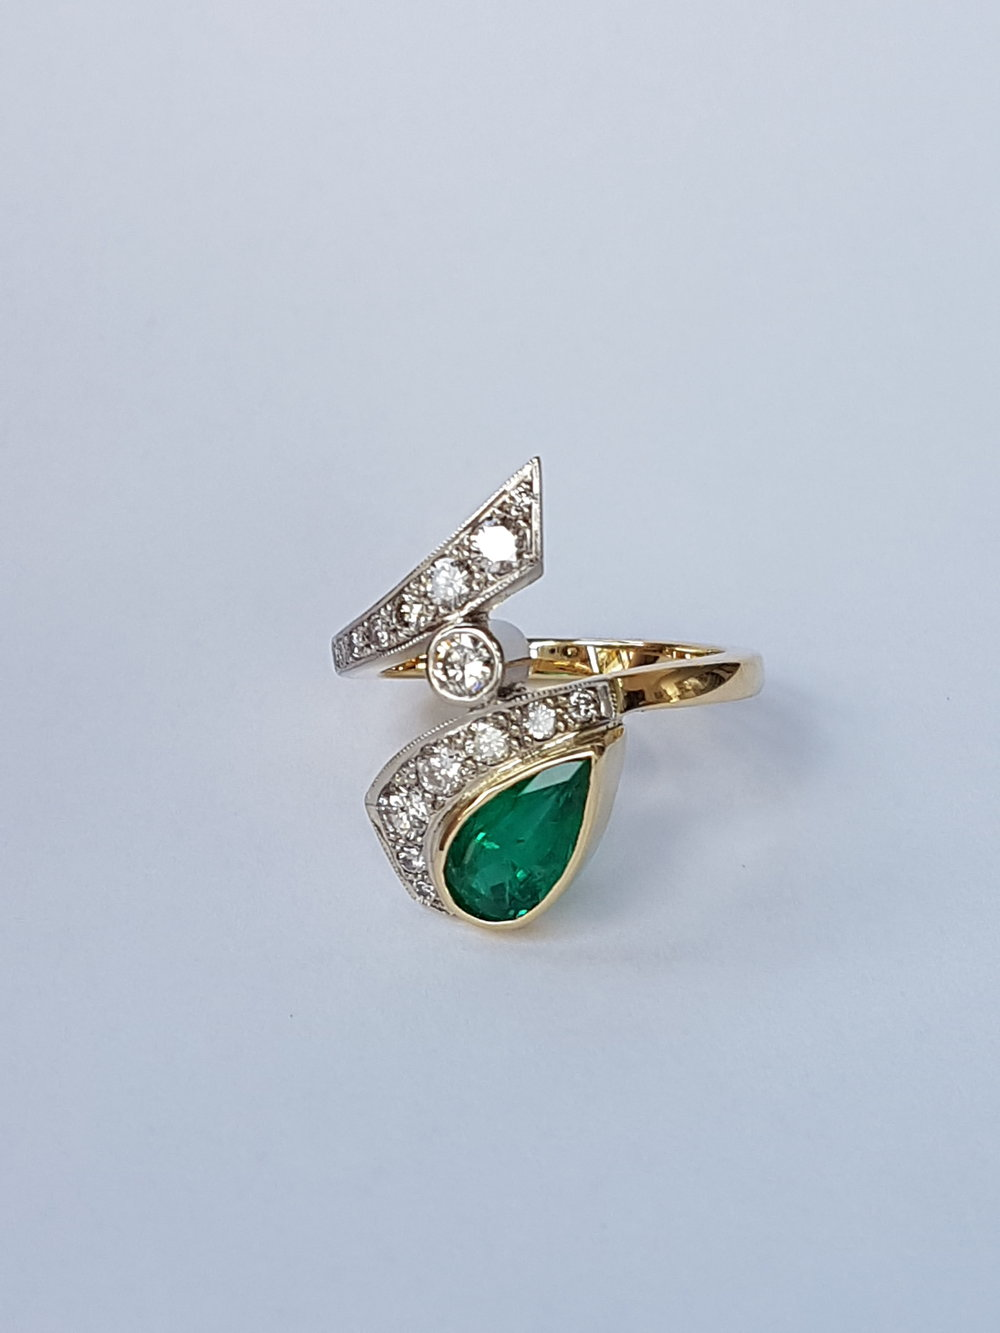 We sourced this lovely emerald just over 2.0ct and set it into QVJ design for a regular client all 18ct gold clients own diamonds.